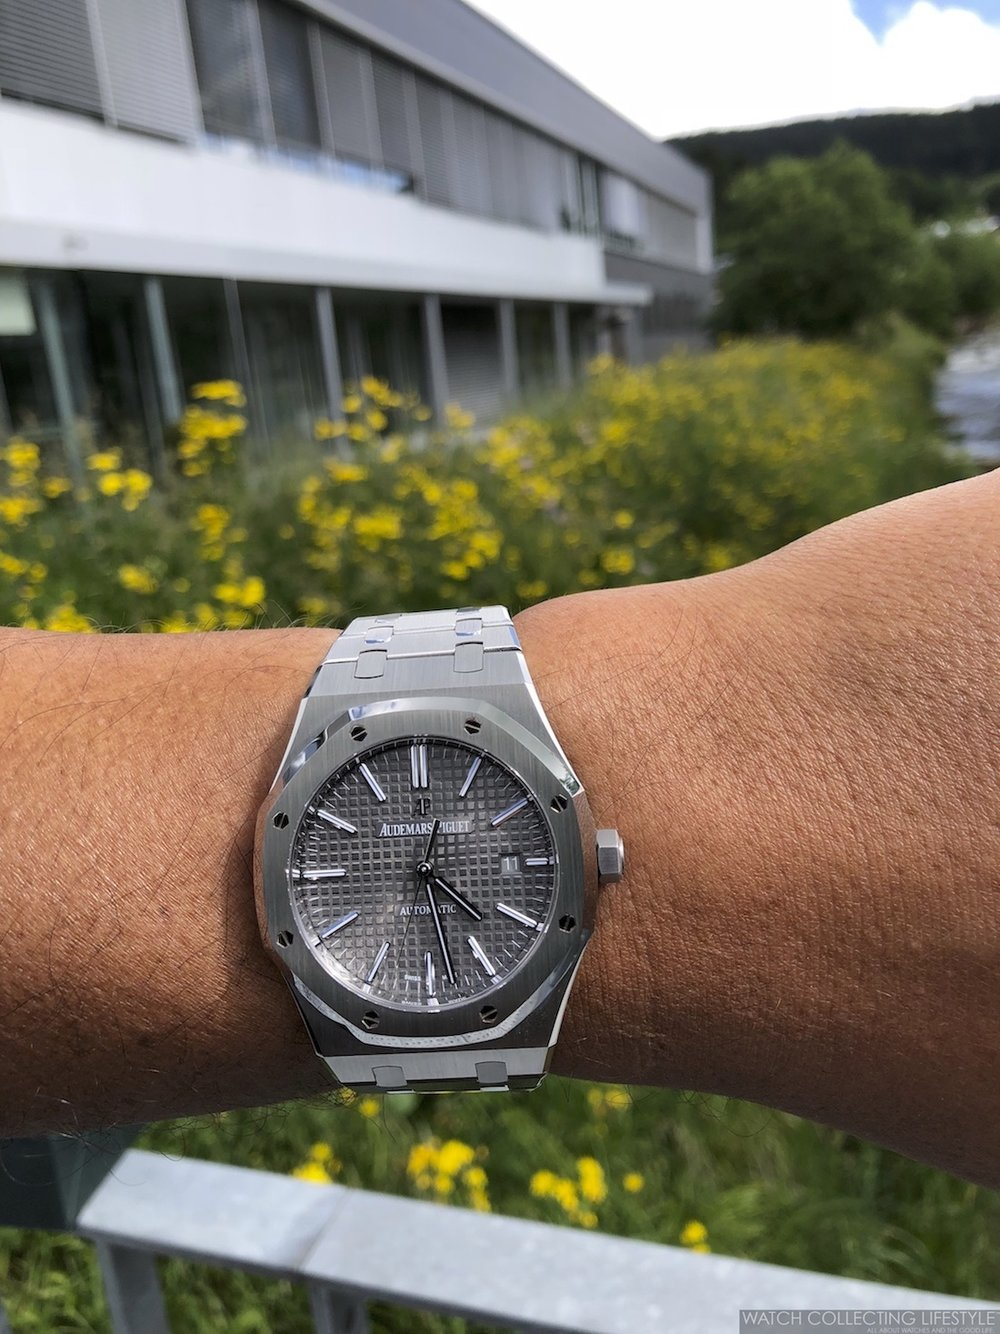 Audemars Piguet Manufacture in Le Brassus and Royal Oak 15400